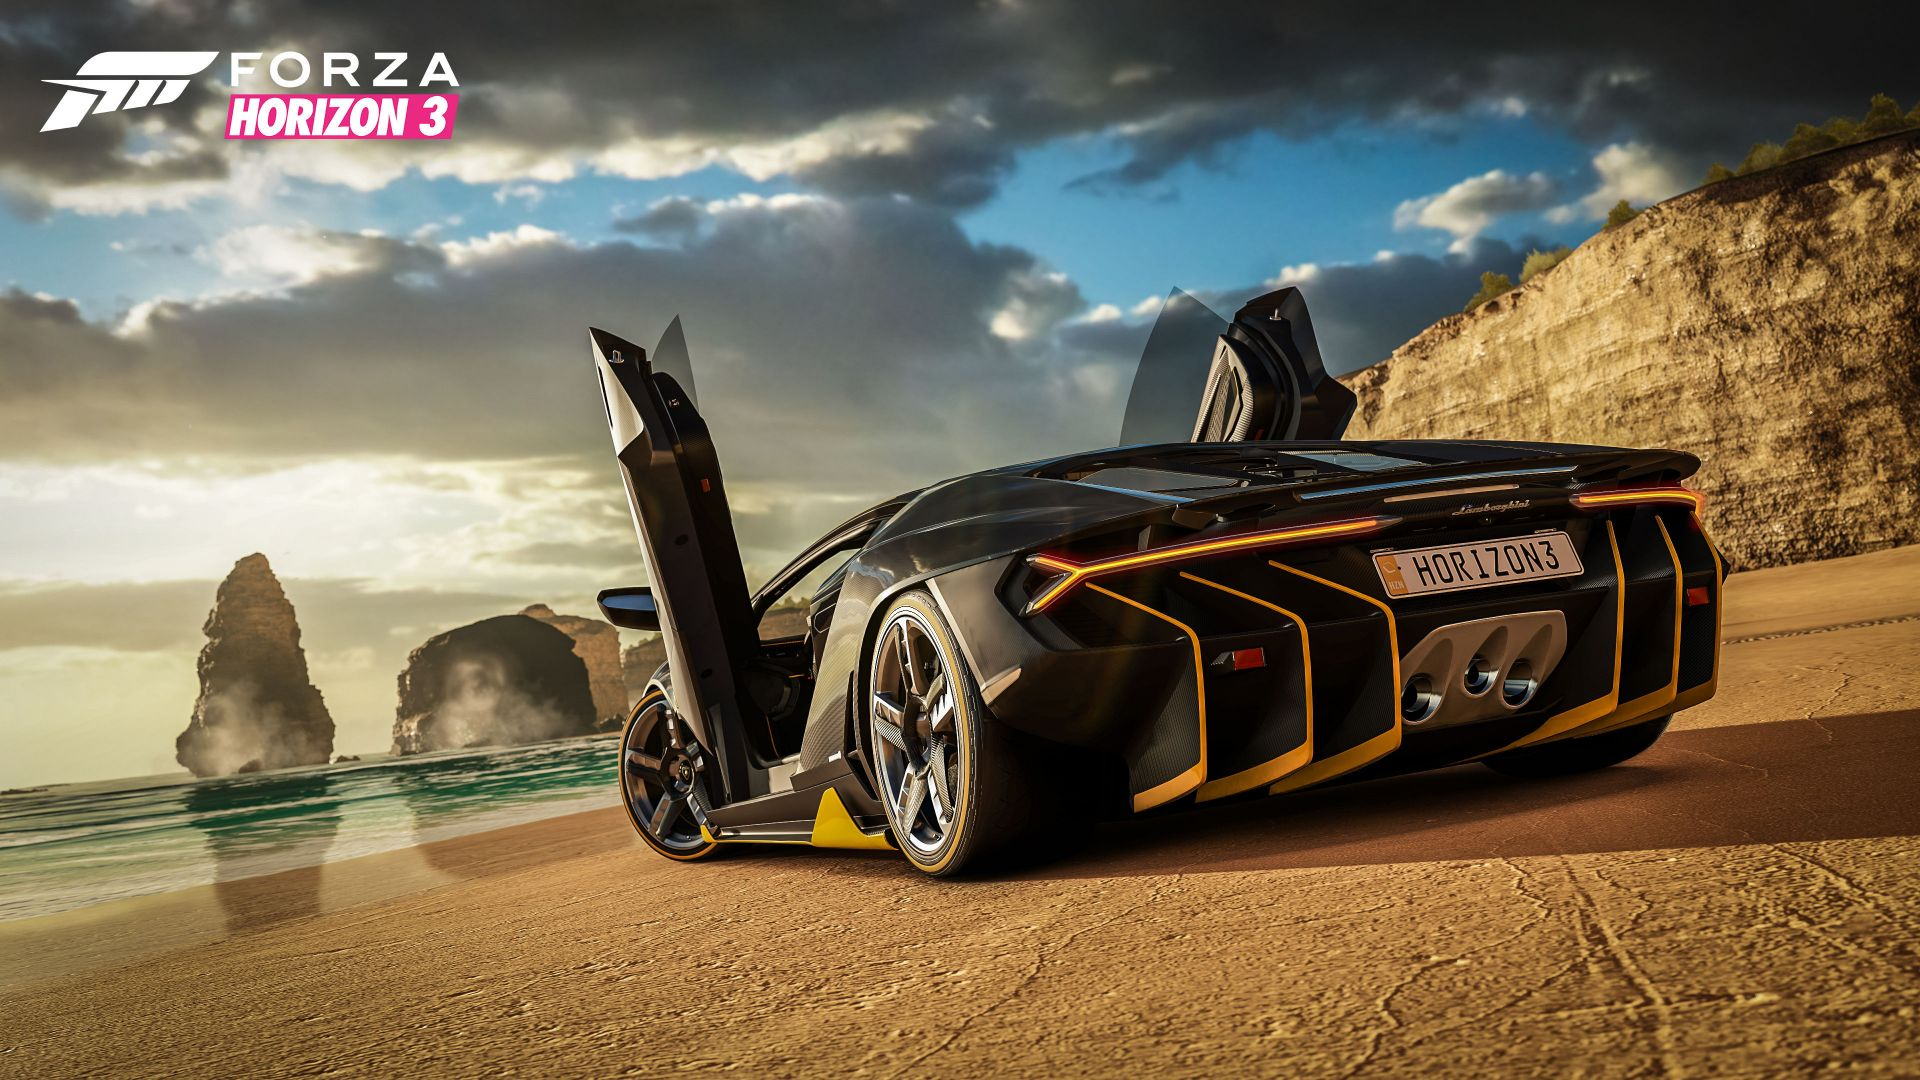 Форза Горизонт 3, гонка, экстрим, E3 2016, лучшие игры, PlayStation 4, Xbox One, Windows, Best Games, Forza Horizon 3, racing, extreme, E3 2016, best games, PlayStation 4, Xbox One, Windows, Best Games